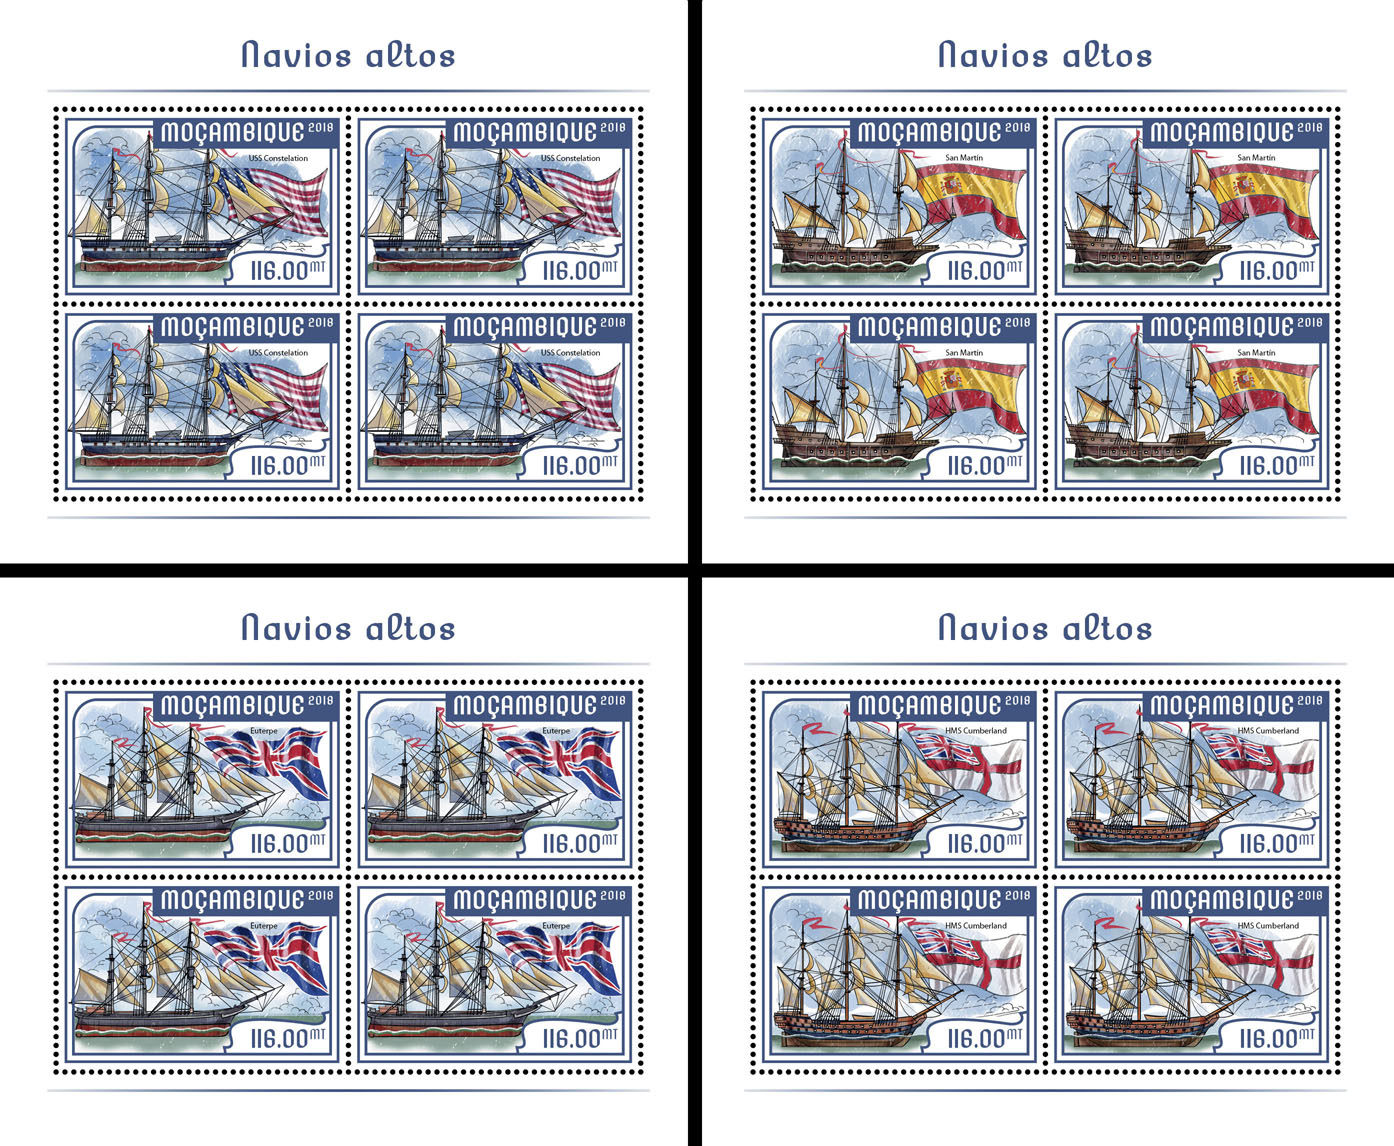 Tall ships (4 sets of 4 stamps) - Issue of Mozambique postage Stamps